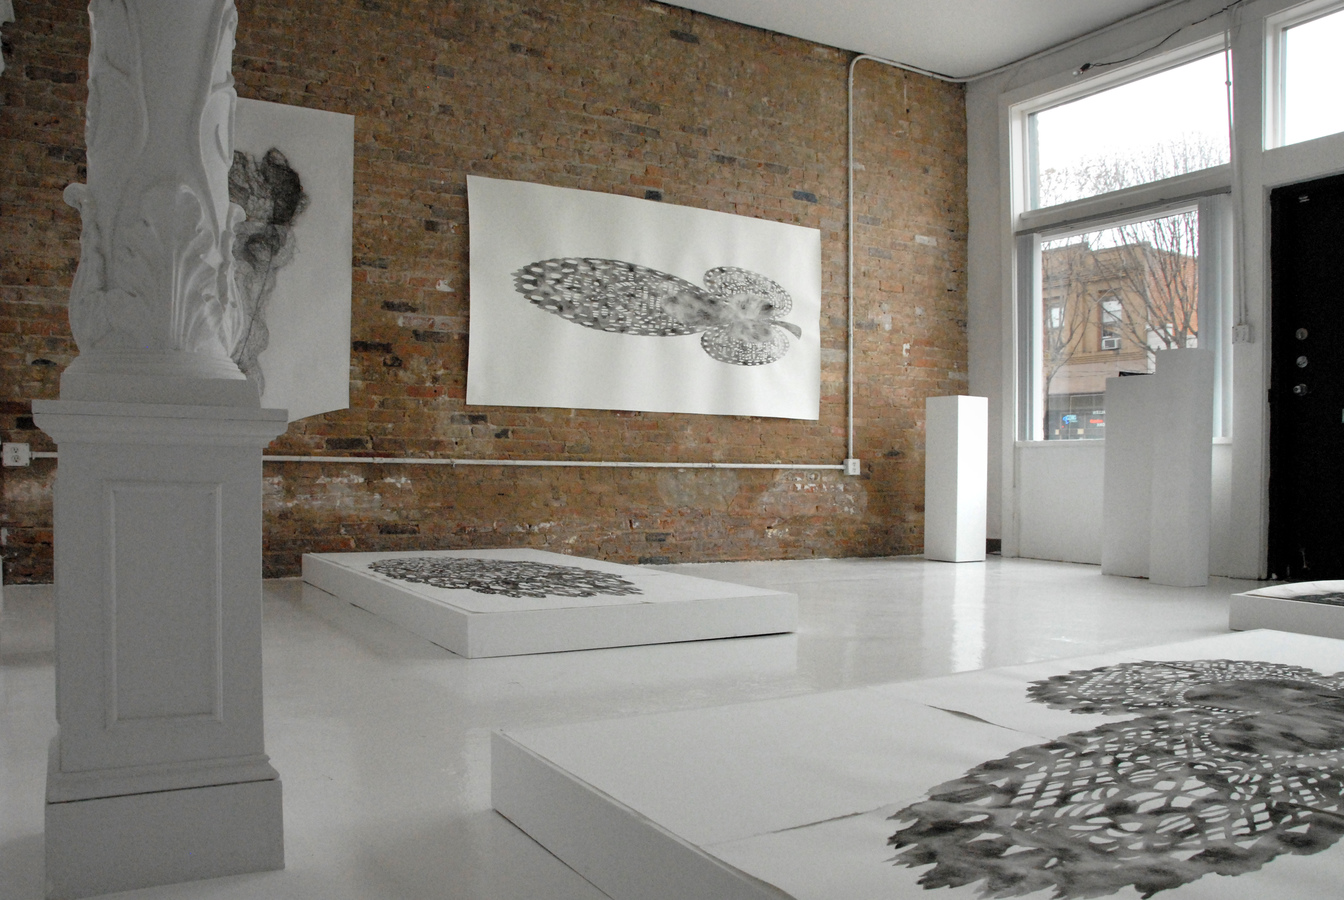 Exhibition: Installation Images Studio 832 exhibition installation view